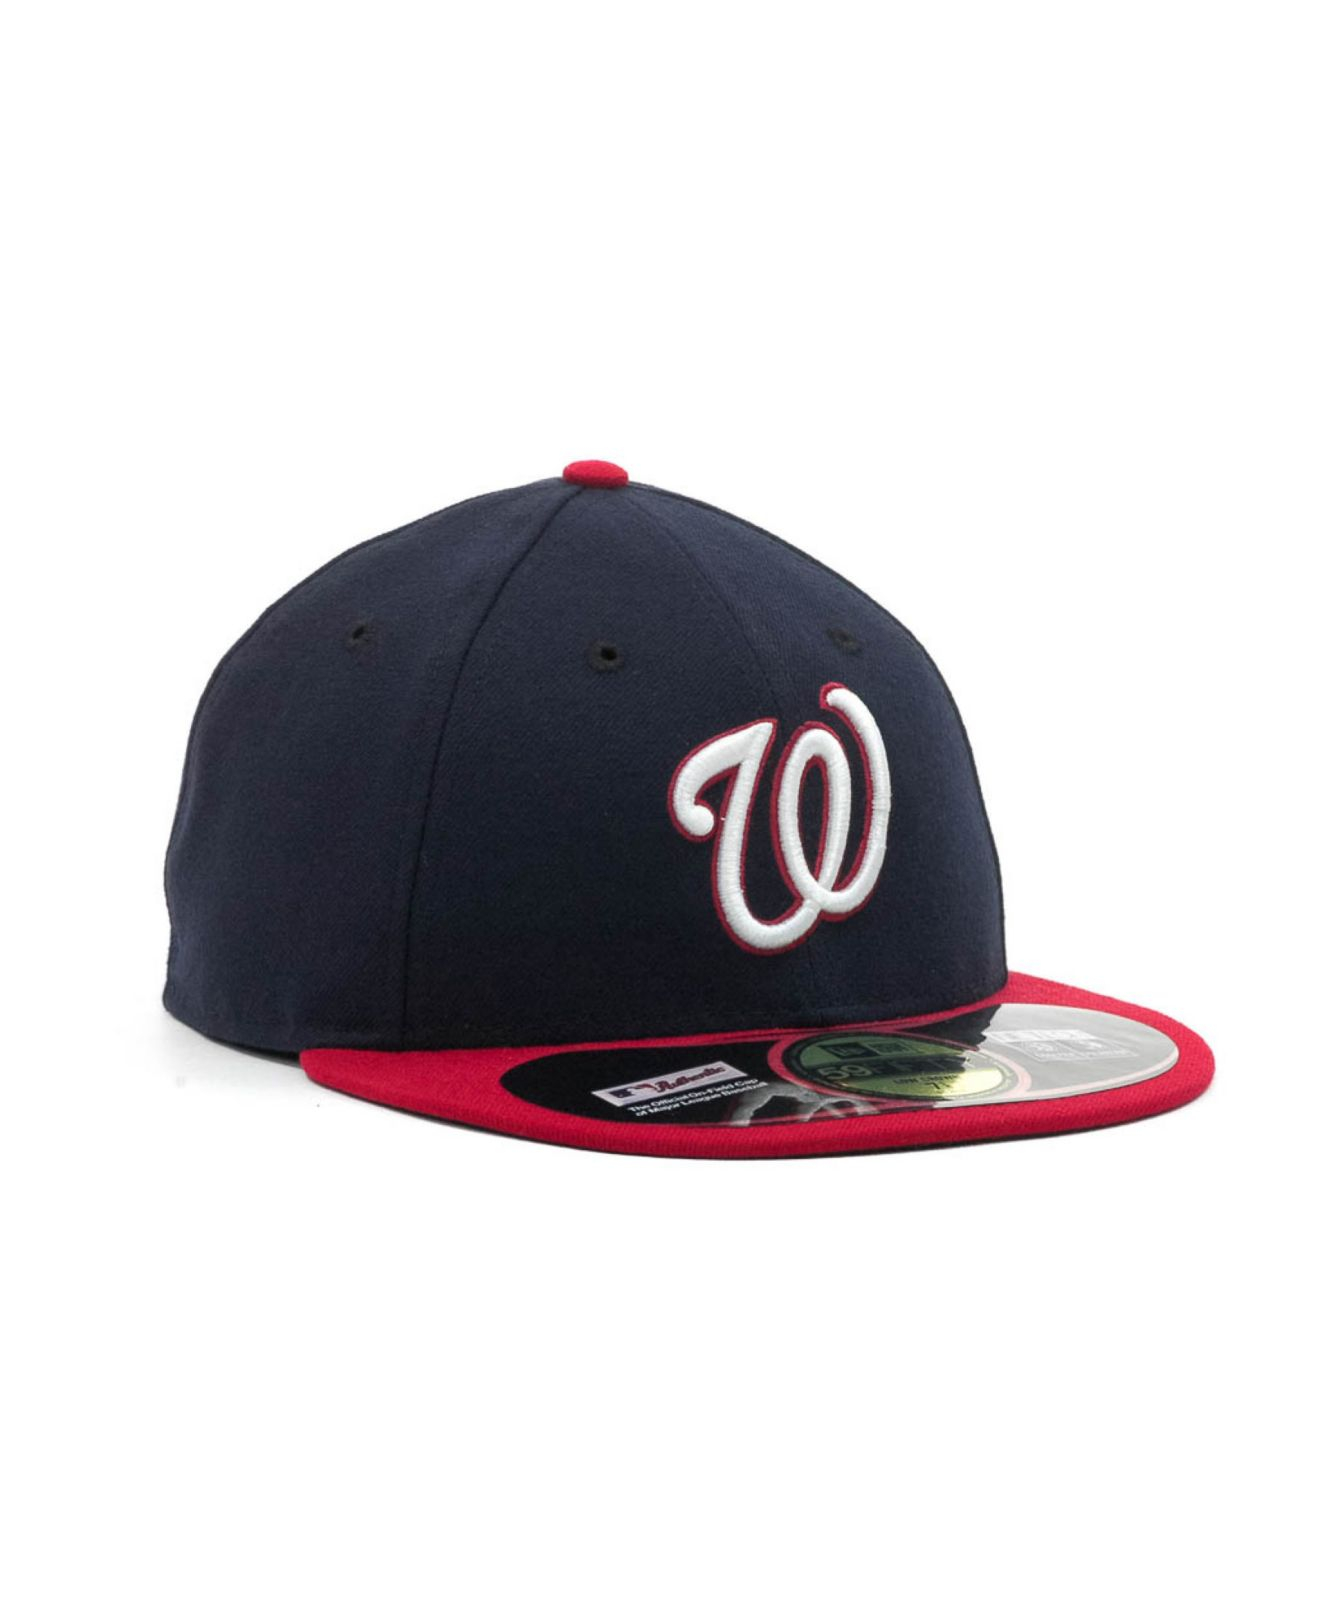 ... discount code for ktz washington nationals low crown ac performance  59fifty cap in 826f4 fe40a 9e193ab6ead